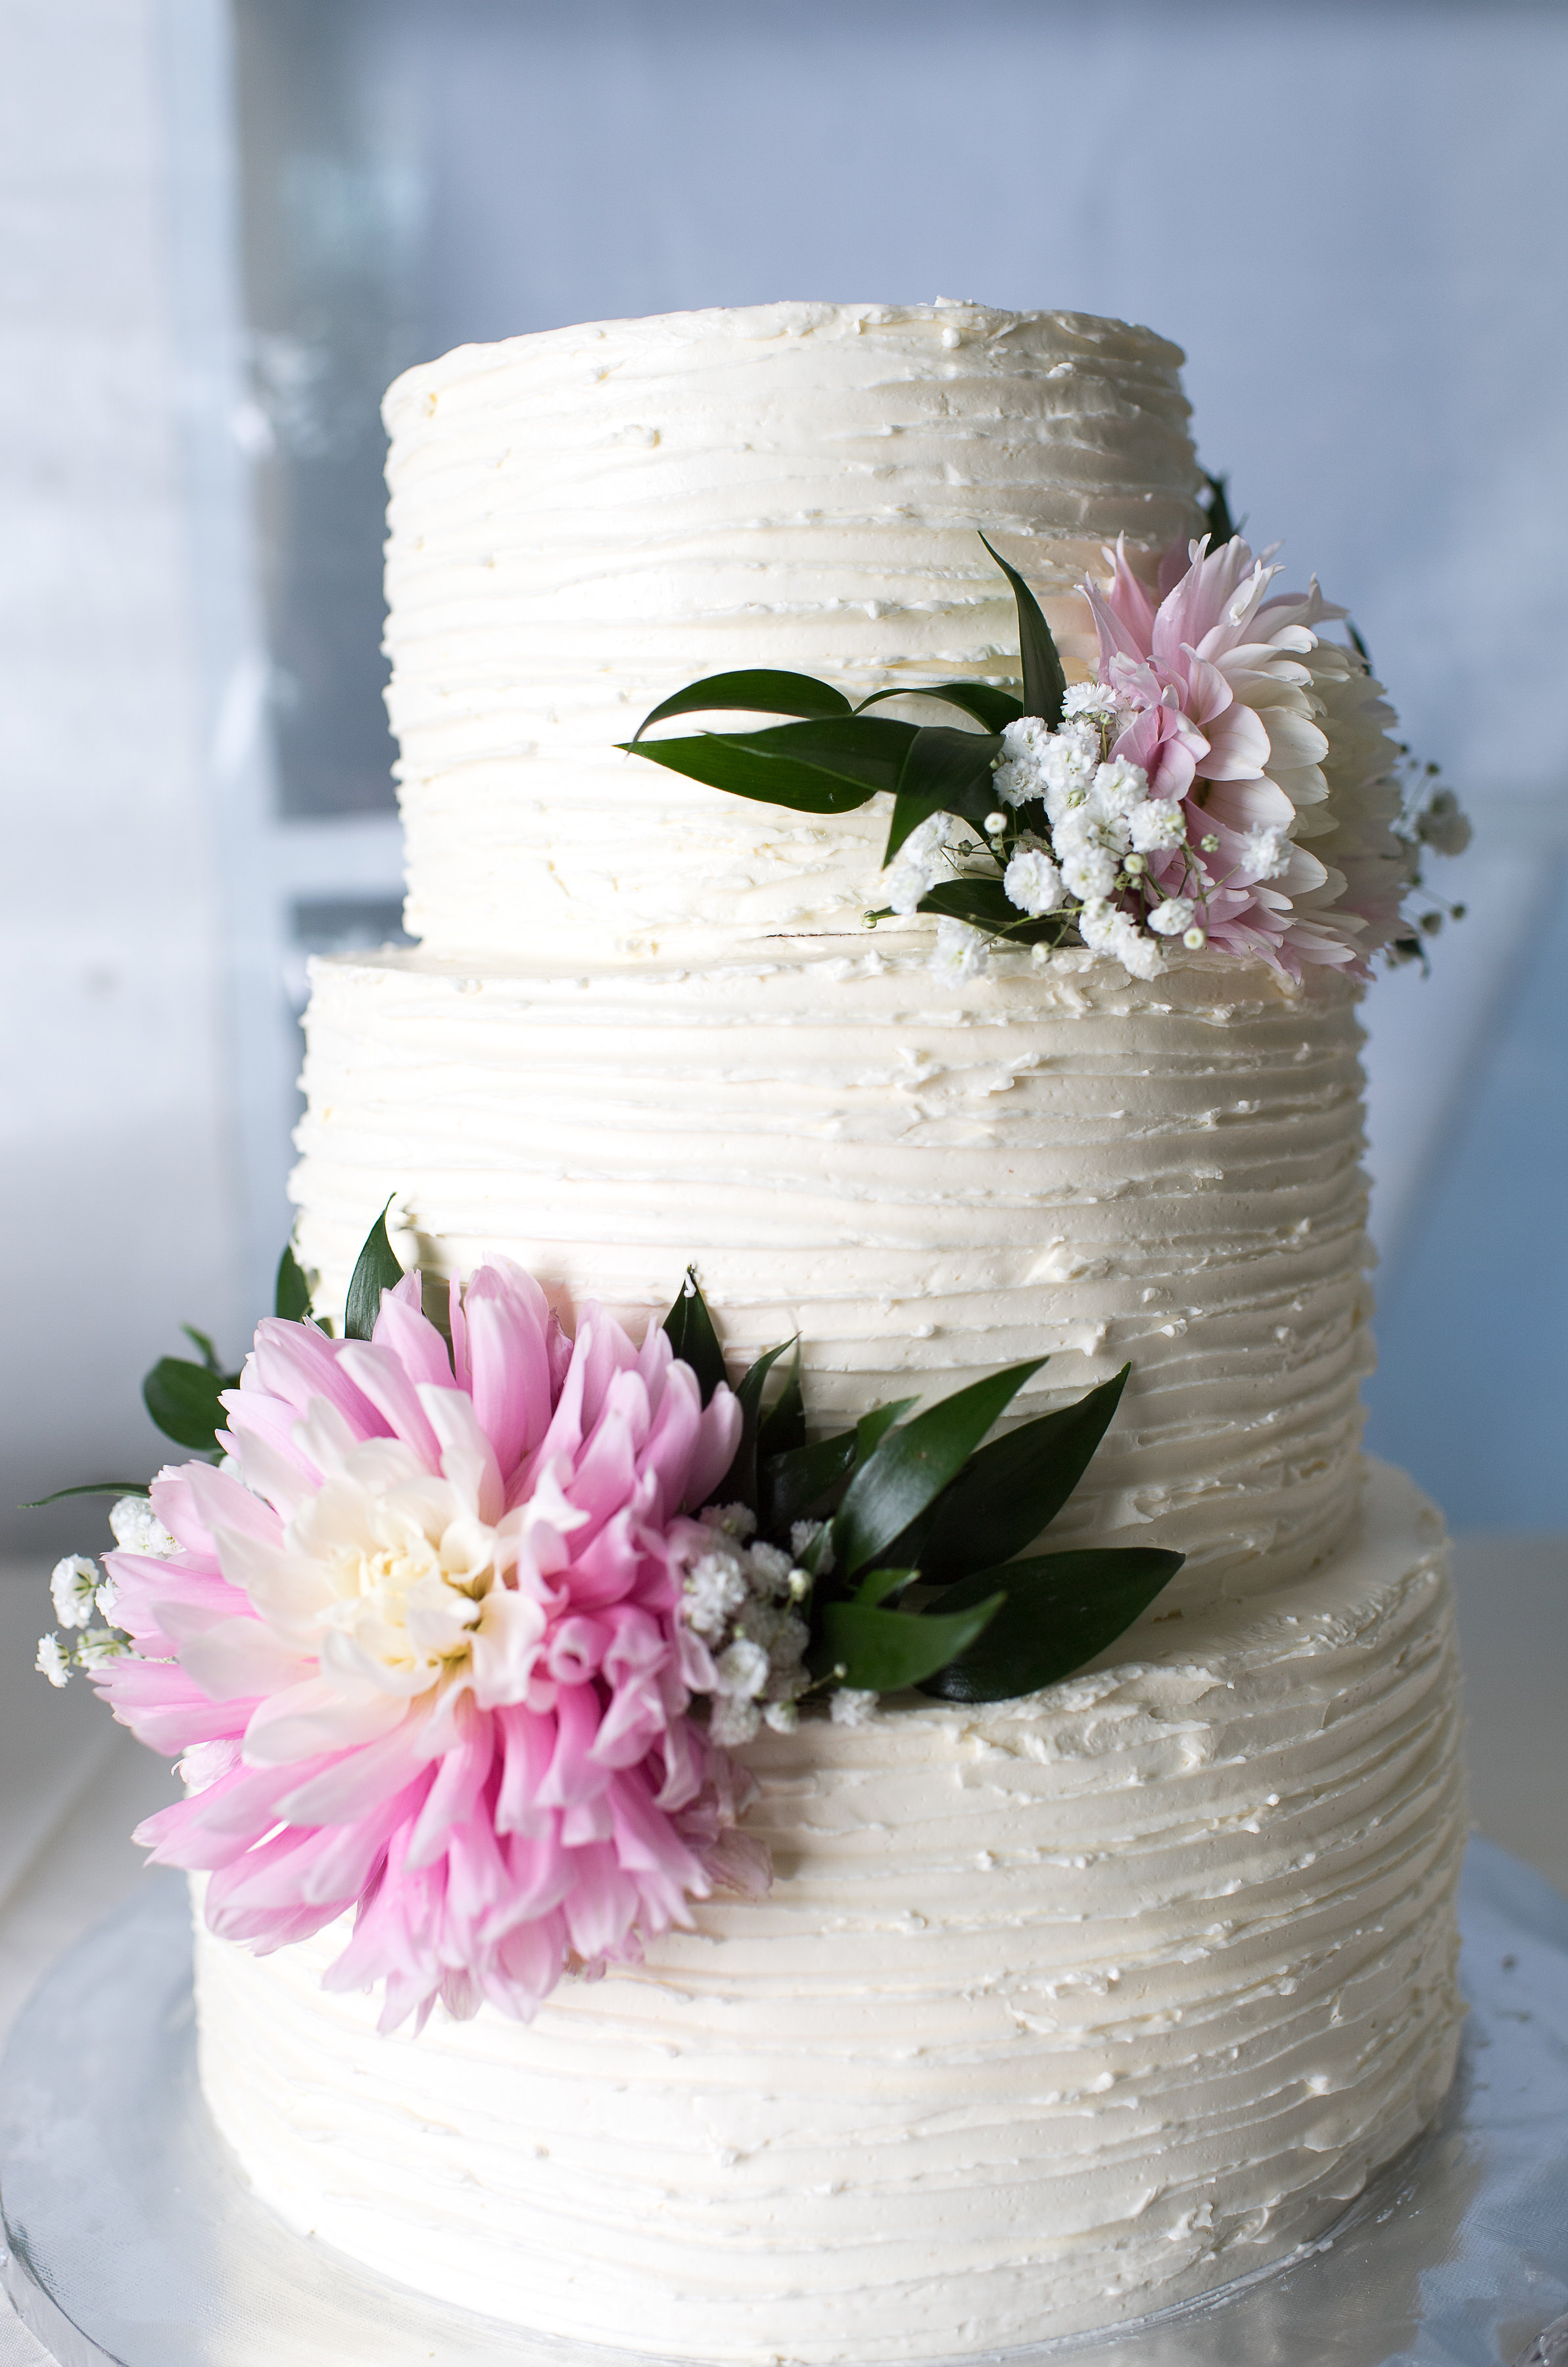 Wedding Cakes by Angela Welch - Vermont Cake Decorator